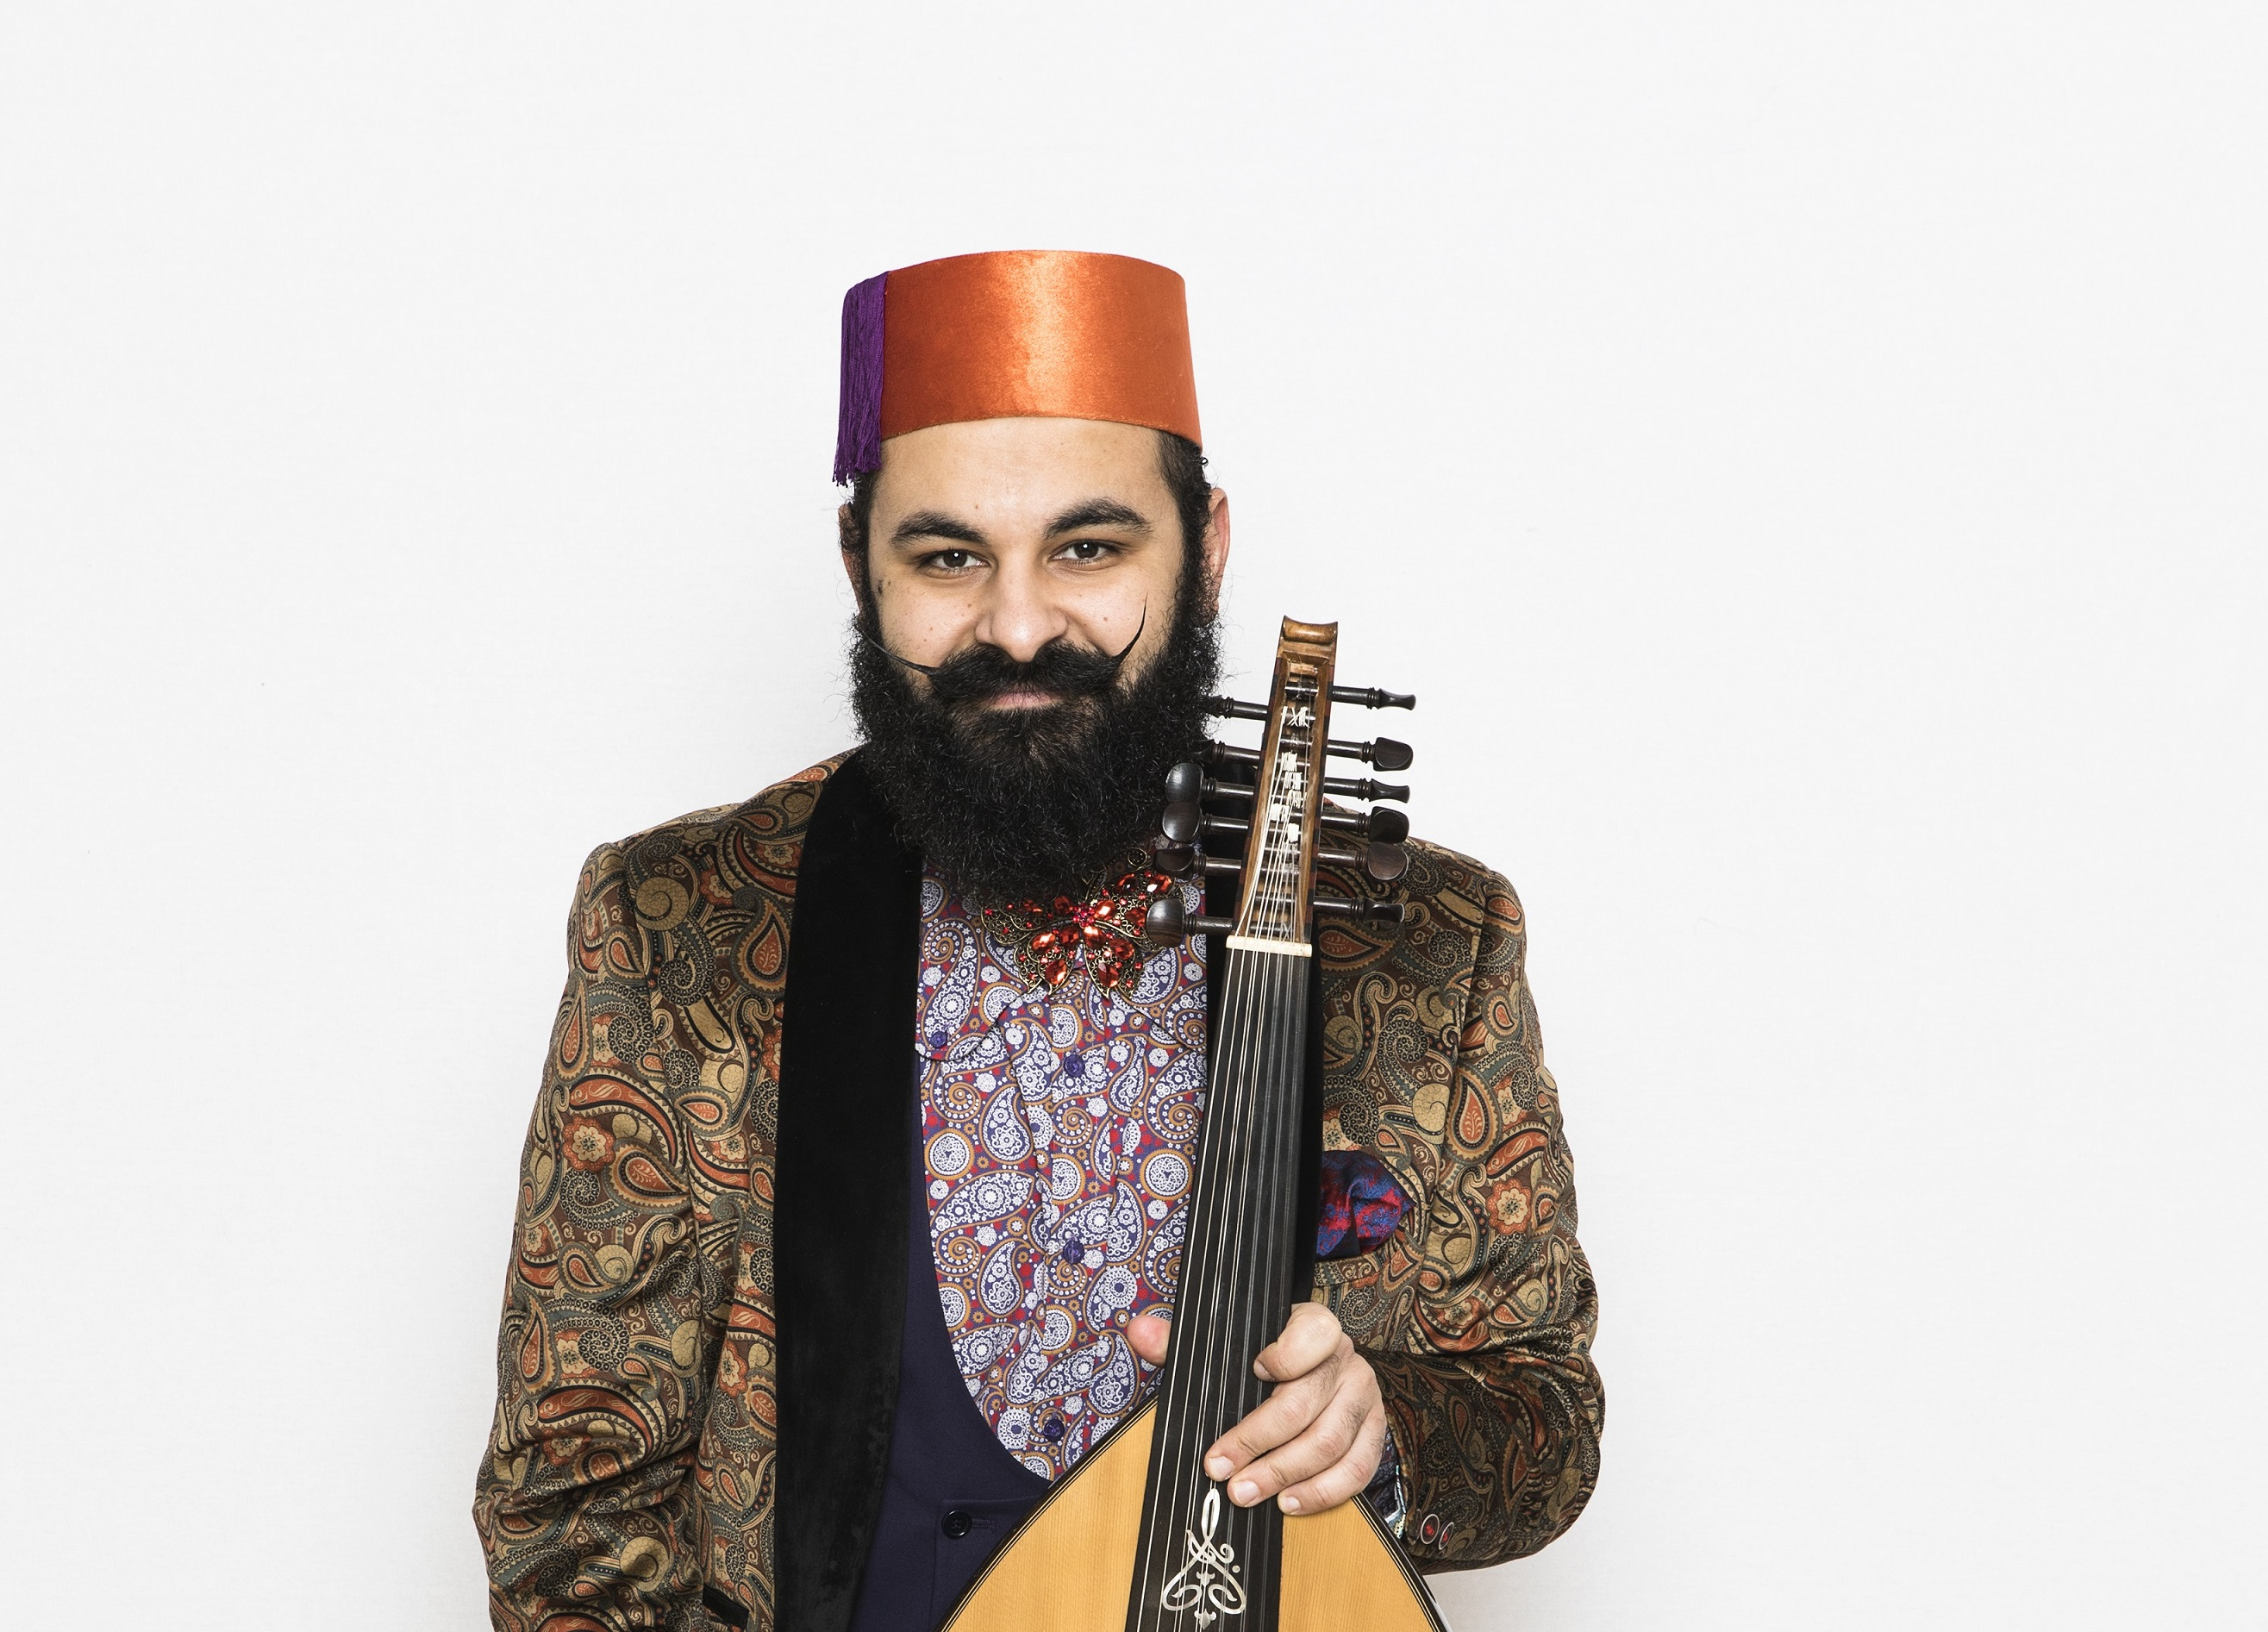 Joseph Tawadros - The Art Of The Oud